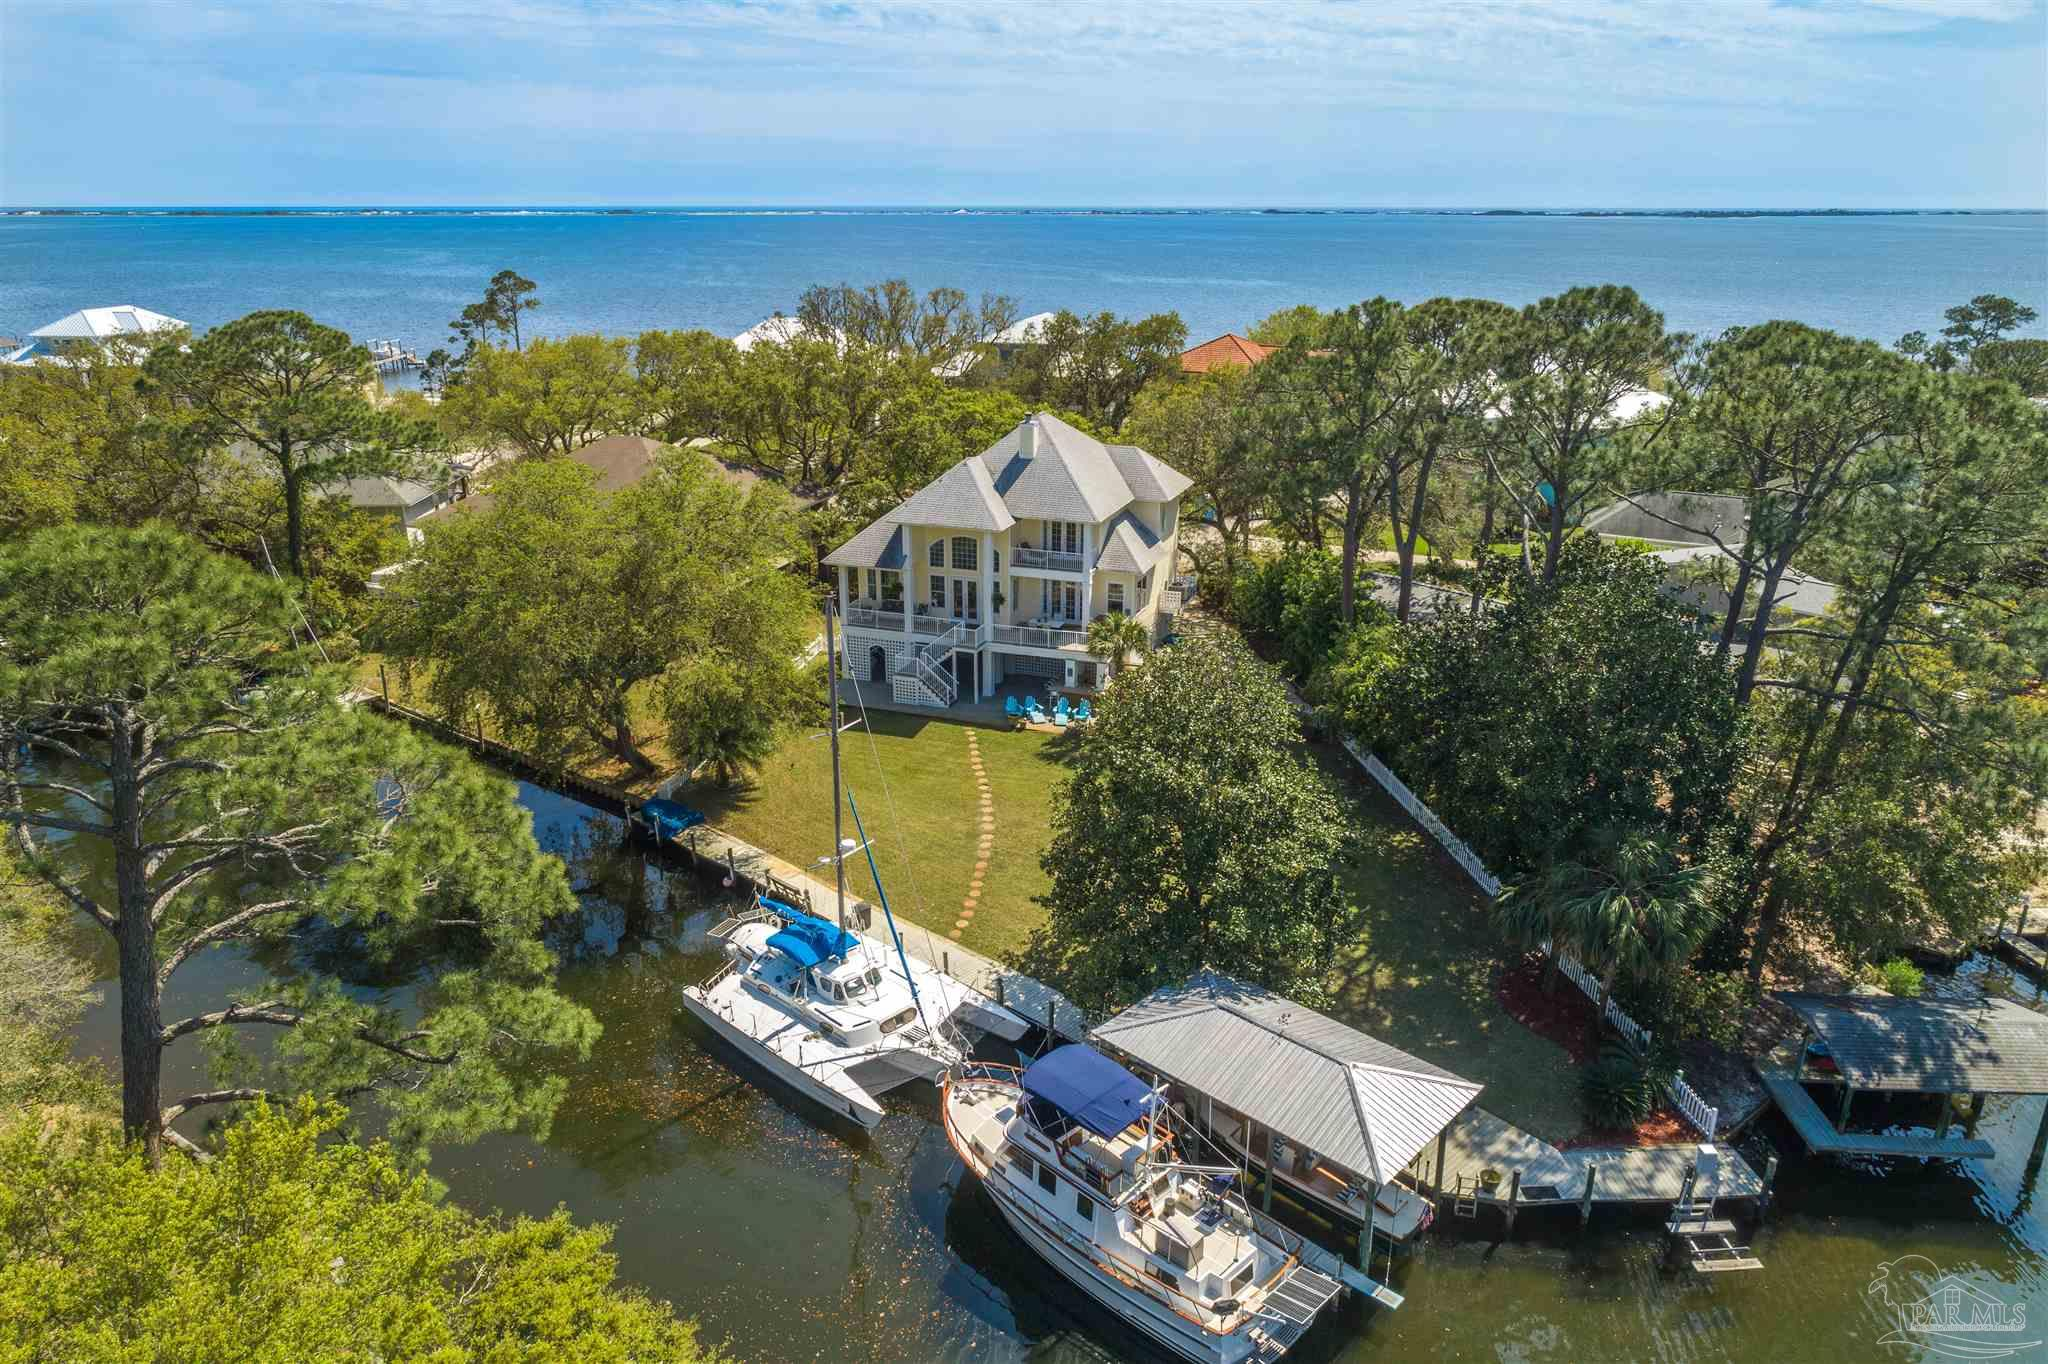 Located on a cul-de-sac just steps from the Santa Rosa Sound with 135 feet of deep water canal frontage, this home is the epitome for Florida living! You'll enjoy the 26 foot, 10,000 pound boat lift with boathouse, jet ski lift, 50 amp to dock and room for 2 additional large boats. This backyard oasis features an outdoor kitchen with built-in grill with mini fridge and microwave, large bar area perfect for entertaining with covered (33x22) and open lanai, outdoor shower, firepit and sizable back yard. The 2 car garage has a large additional workshop space and covered storage area (17x13). Also located on the bottom floor is a brand new addition. You'll find a bedroom with a kitchenette, bathroom with walk-in shower and mini split HVAC. This space would make for a good guest or in-law space or even an airbnb. On the main living floor, you'll find the master suite, kitchen and living space with water views from every window. The kitchen comes equipped with granite counter tops, gas cooktop, breakfast bar and stainless appliances. Just off the kitchen is the dining room and spacious living room with a fireplace and cathedral ceilings. You'll enjoy the ample natural light throughout the home as well as the custom Eastern White Pine hardwood flooring imported from New York. The master suite has French doors with a separate entrance to the covered balcony providing water views and the bathroom has a walk-in shower with 2 shower heads, heat lights, double granite vanity, urinal and a large walk-in closet. The 3rd floor has 2 additional bedrooms and a full bathroom with a shower-tub combo. Other notables are IMPACT GLASS, large balcony with dining and living area on second floor just off the main living area, office nook just off the kitchen, powder room, recessed lighting, surround sound, crown molding, beautiful oak trees, and second bedroom upstairs has a private balcony overlooking the water. Check out our full video tour on the MLS and YouTube.